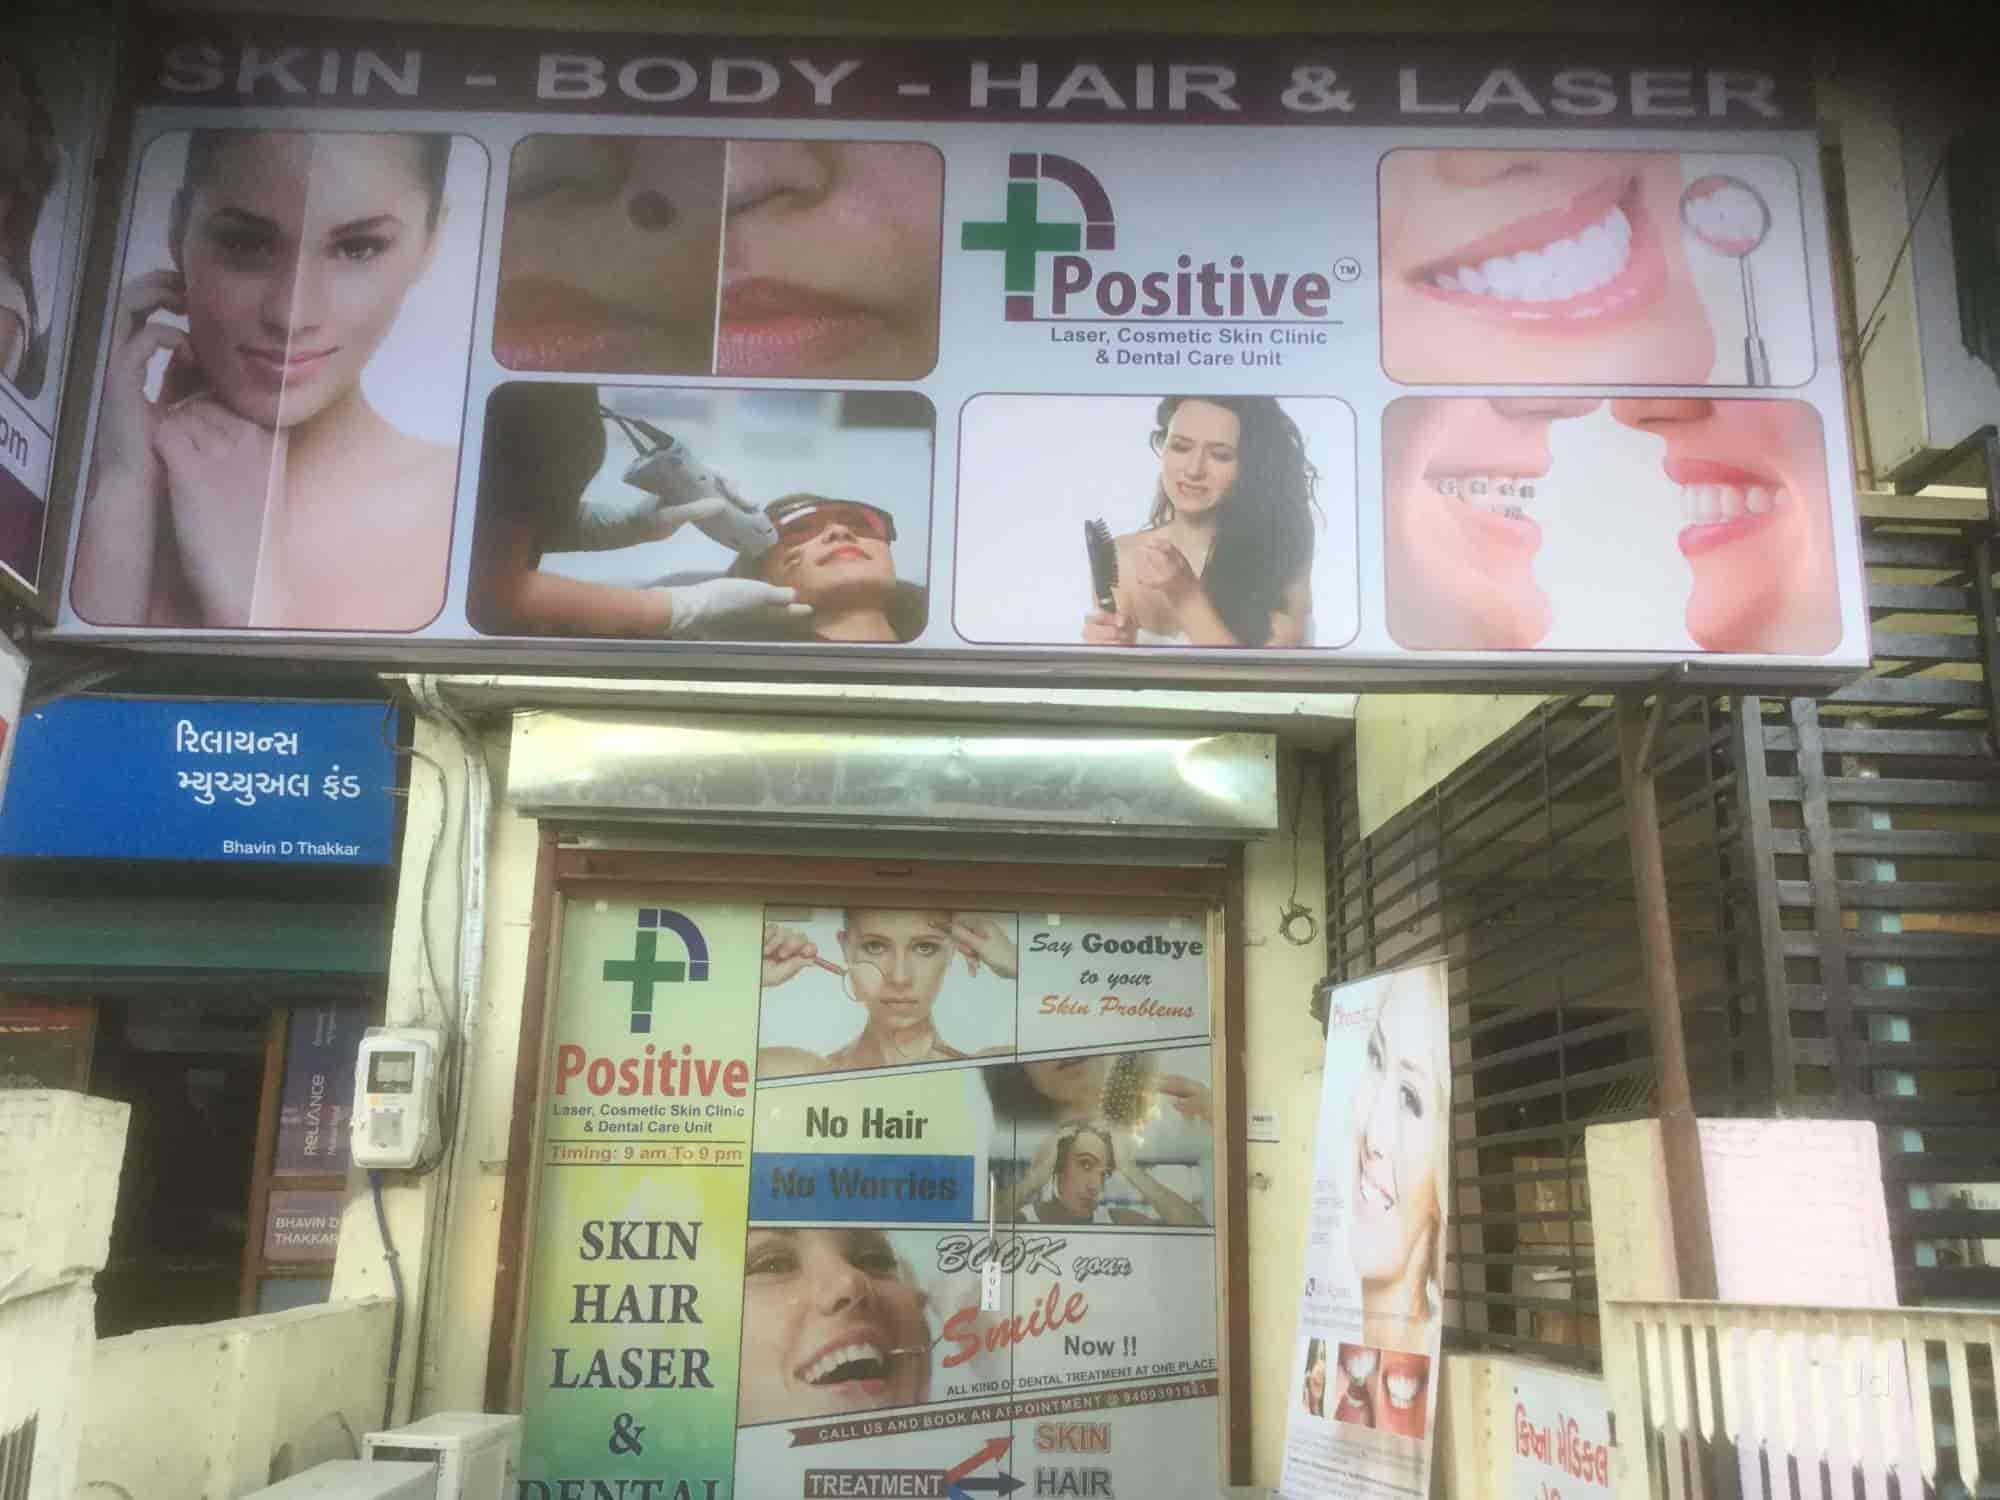 Positive Laser Cosmetic Skin Clinic & Dental Care Unit